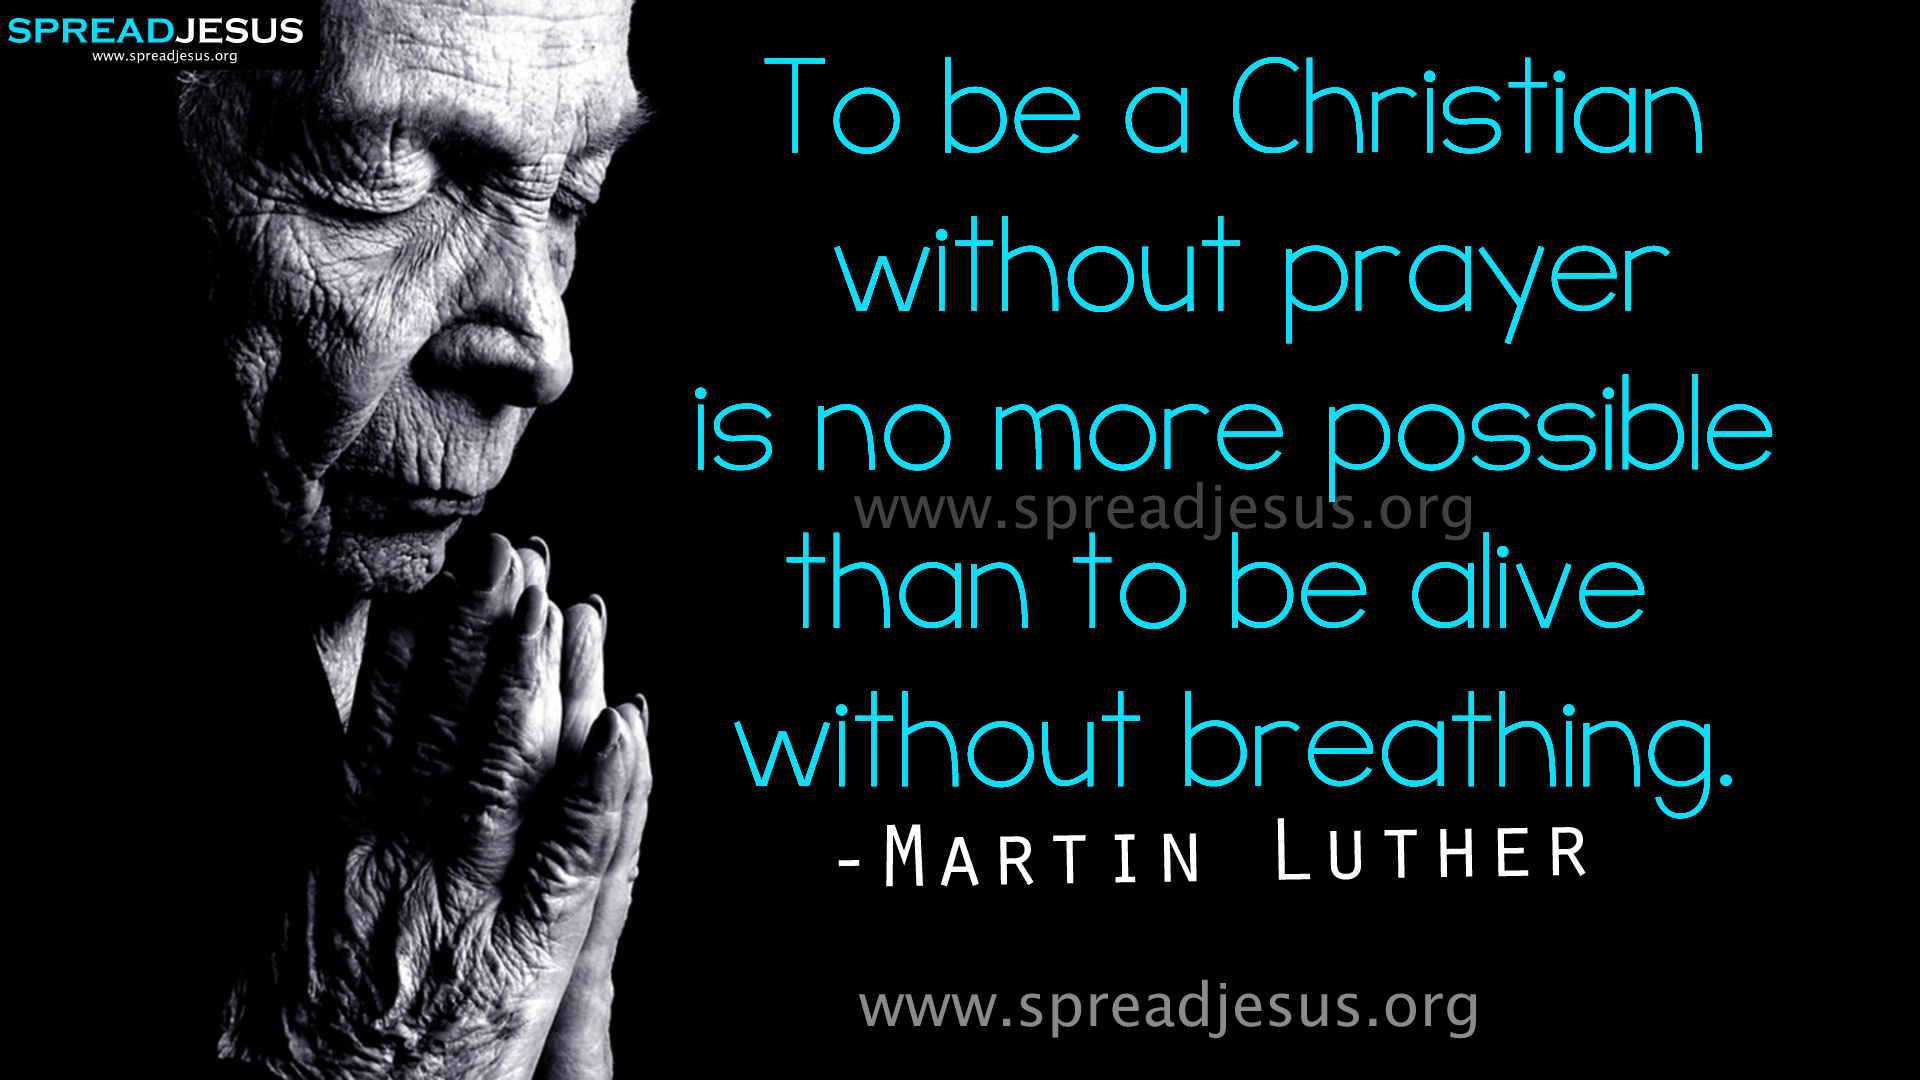 "PRAYER QUOTES HD-WALLPAPERS PRAYER QUOTES HD-WALLPAPERS-spreadjesus.org,PRAYER QUOTES HD-WALLPAPERS PRAYER QUOTES HD-WALLPAPERS-spreadjesus.org,PRAYER QUOTES HD-WALLPAPERS PRAYER QUOTES HD-WALLPAPERS-spreadjesus.org-""To be a Christian without prayer is no more possible than to be alive without breathing."" -Martin Luther"